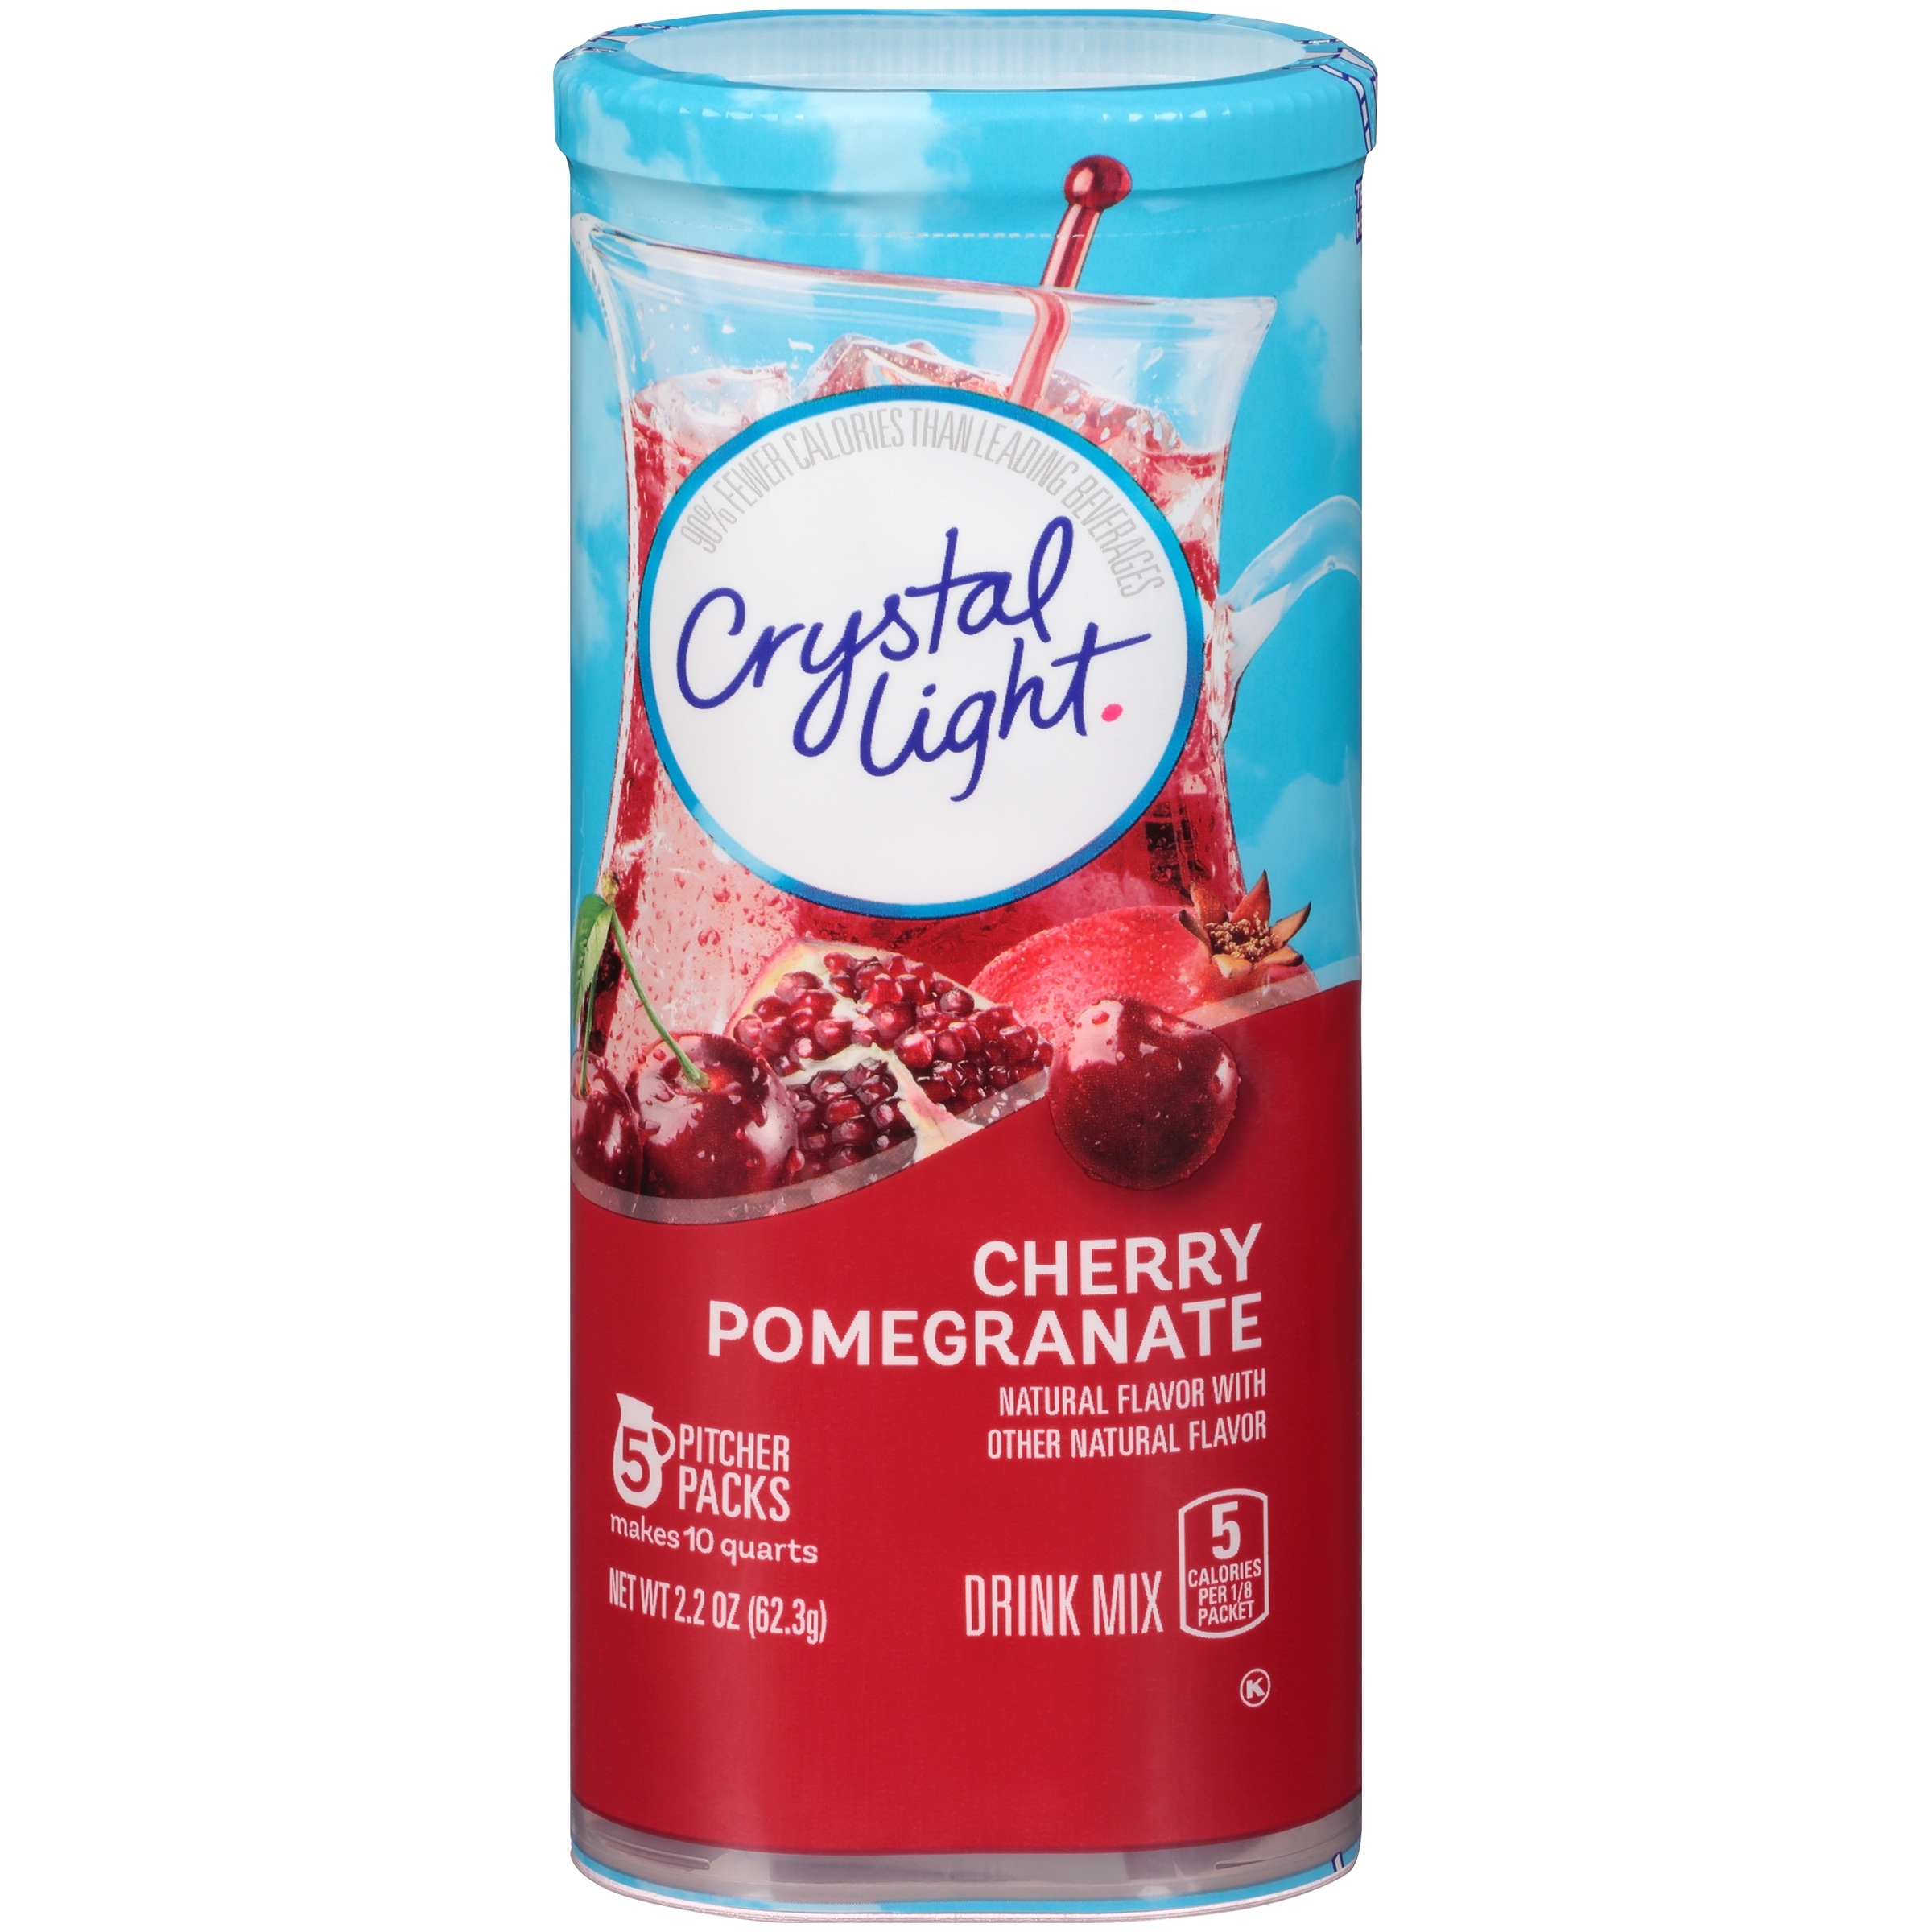 Crystal Light Cherry Pomegranate Drink Mix 5 ct Canister